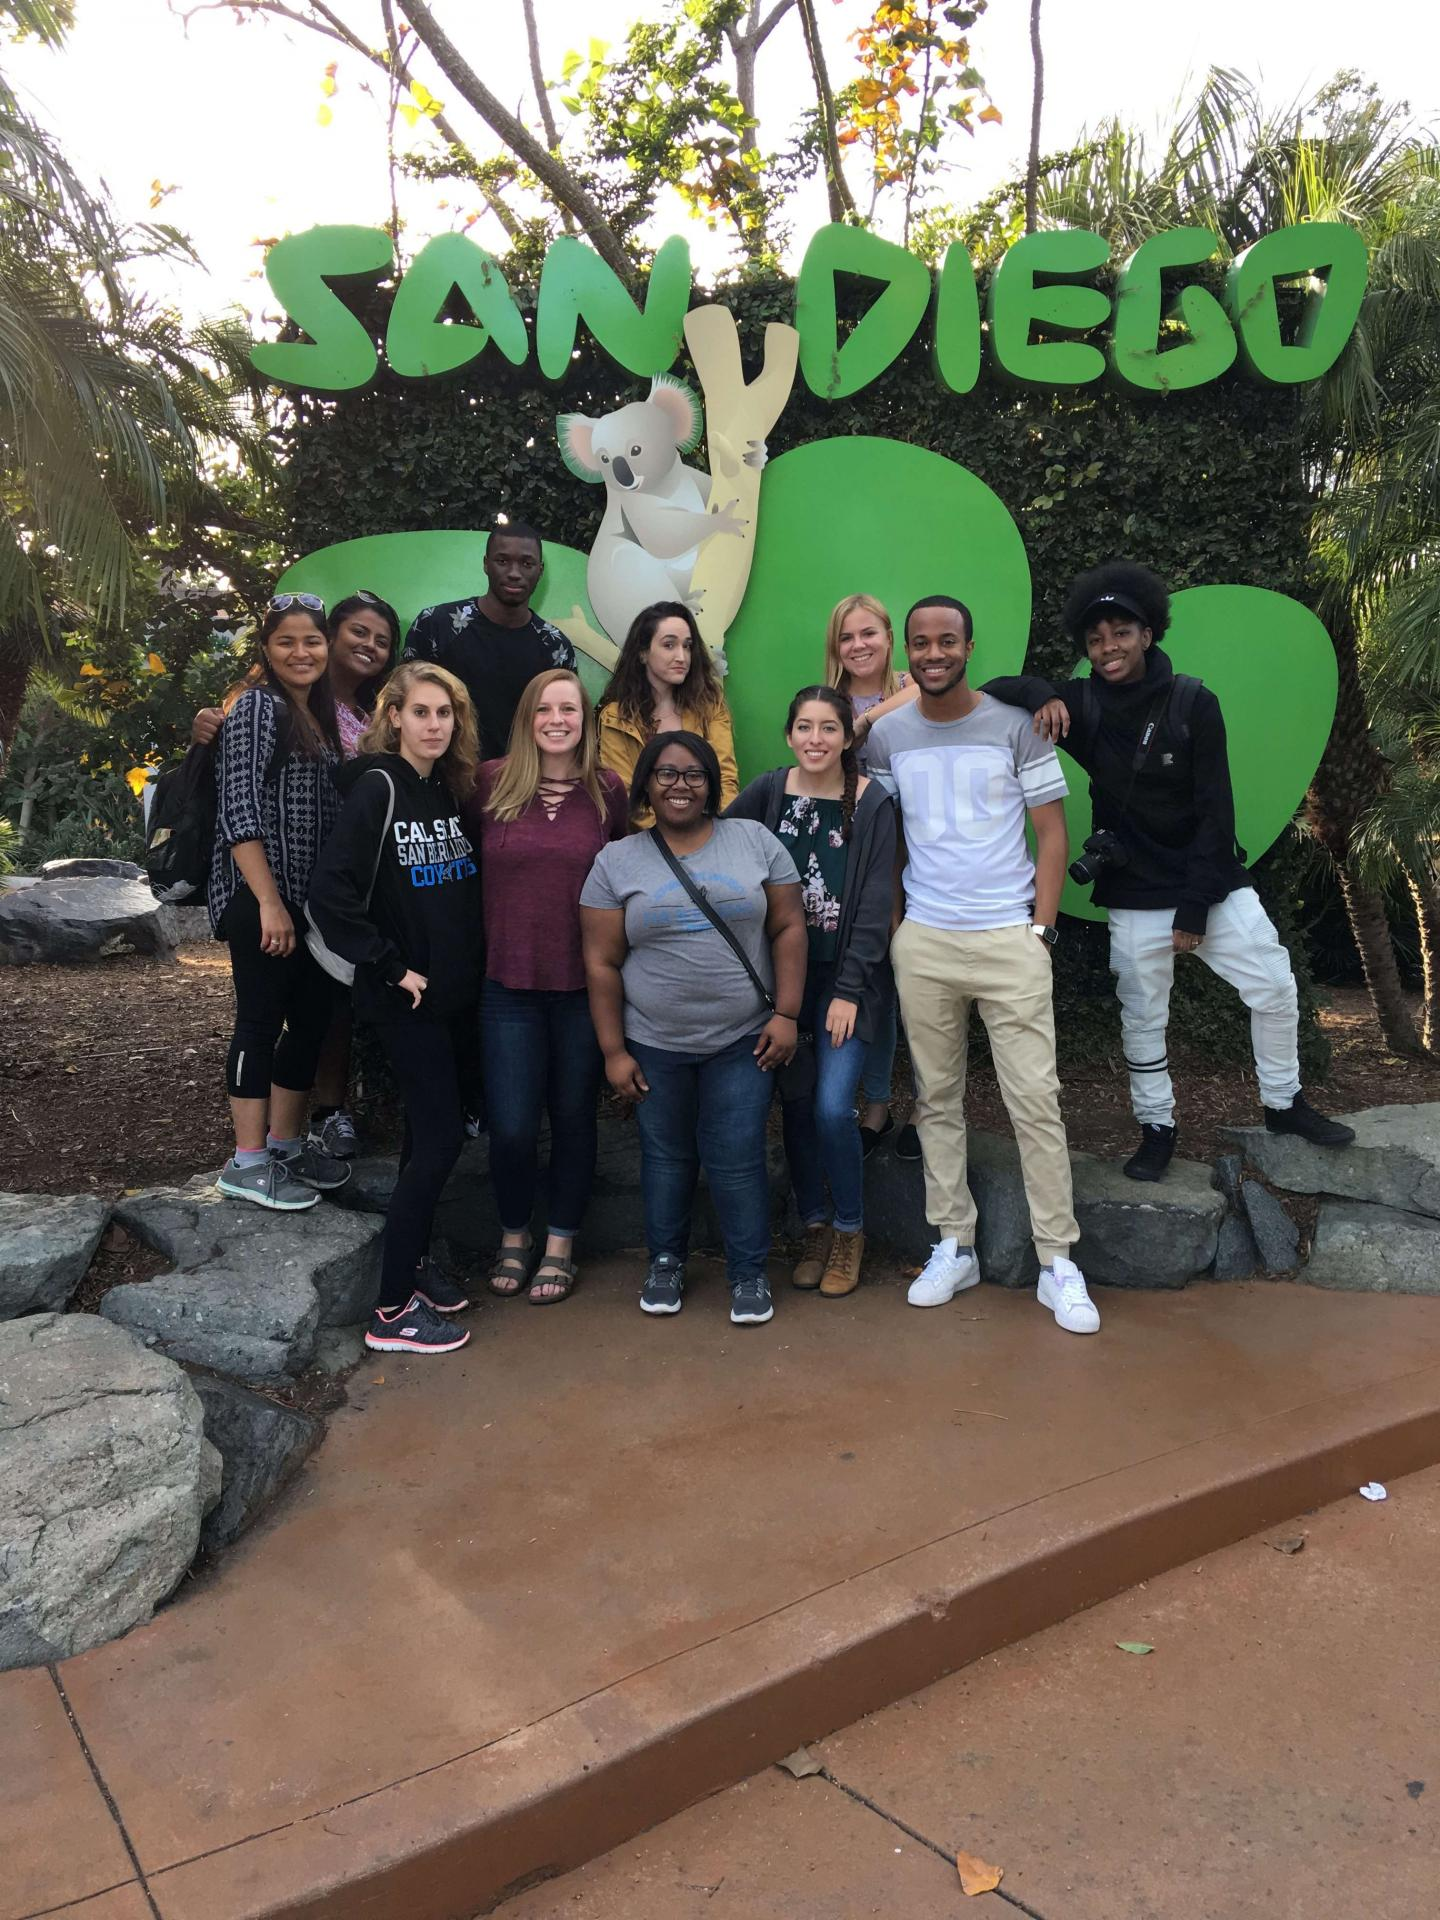 Students in San Diego Zoo